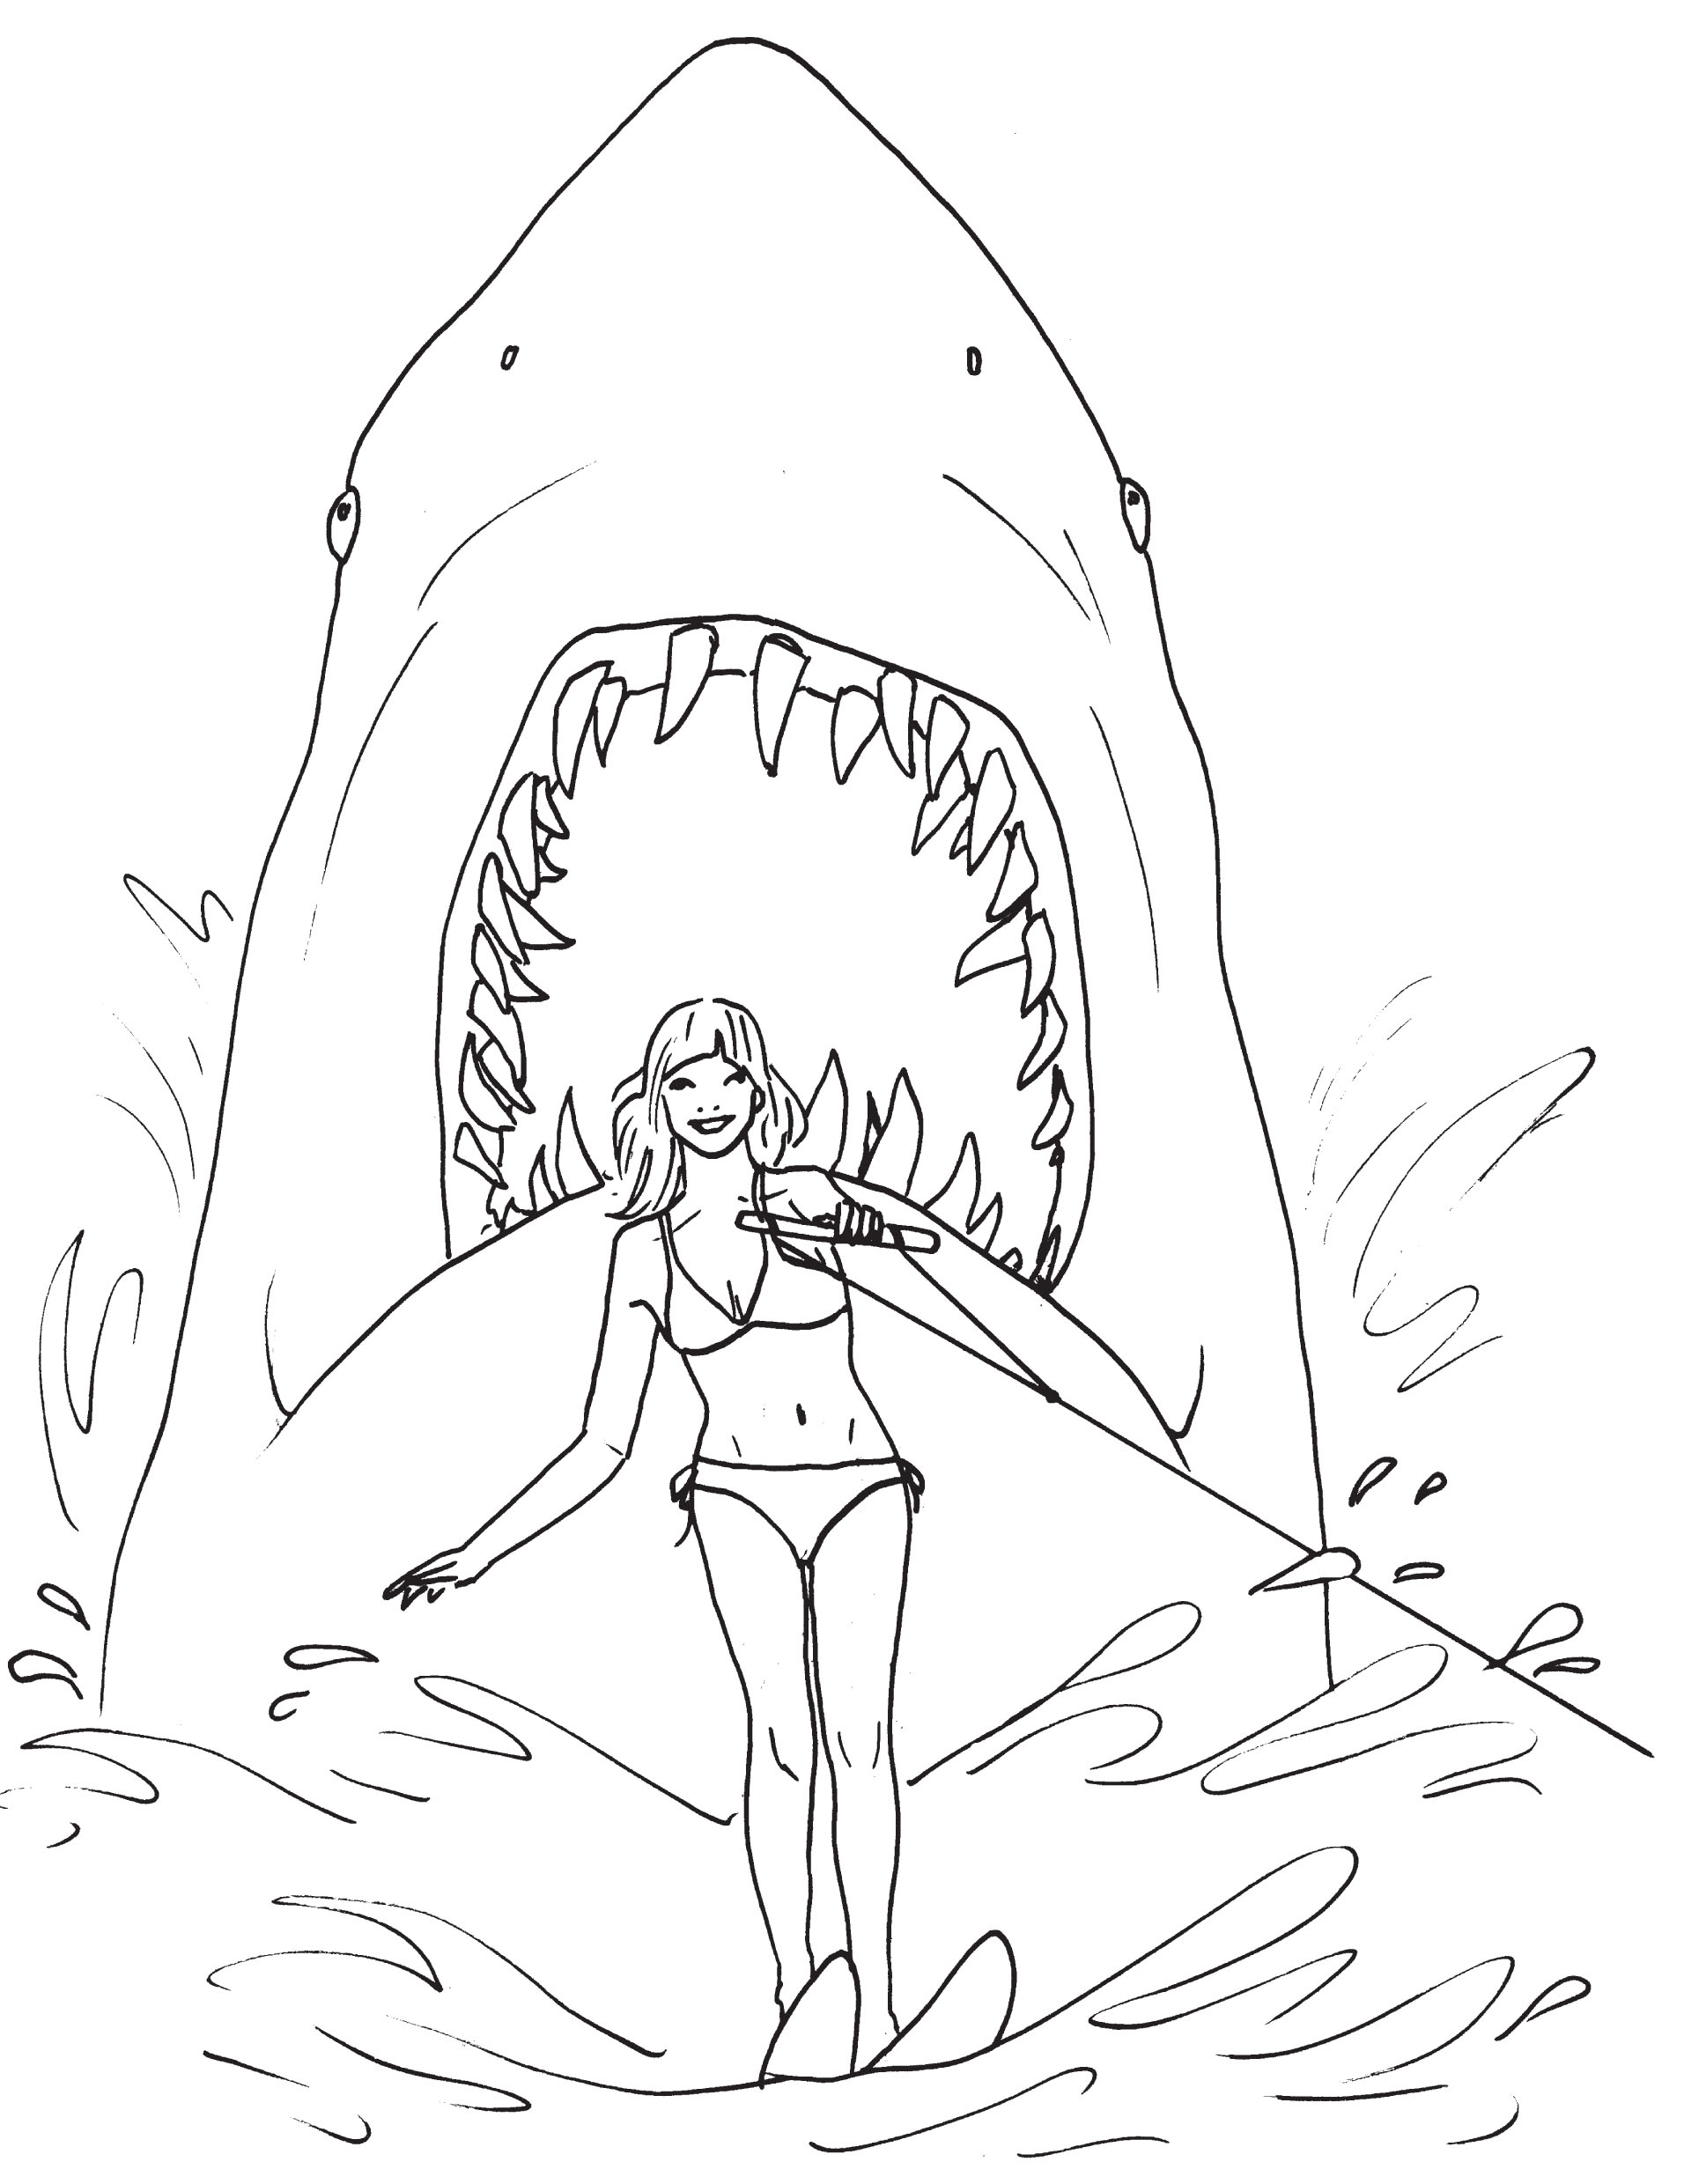 Shark With Mouth Open Drawing At Getdrawings